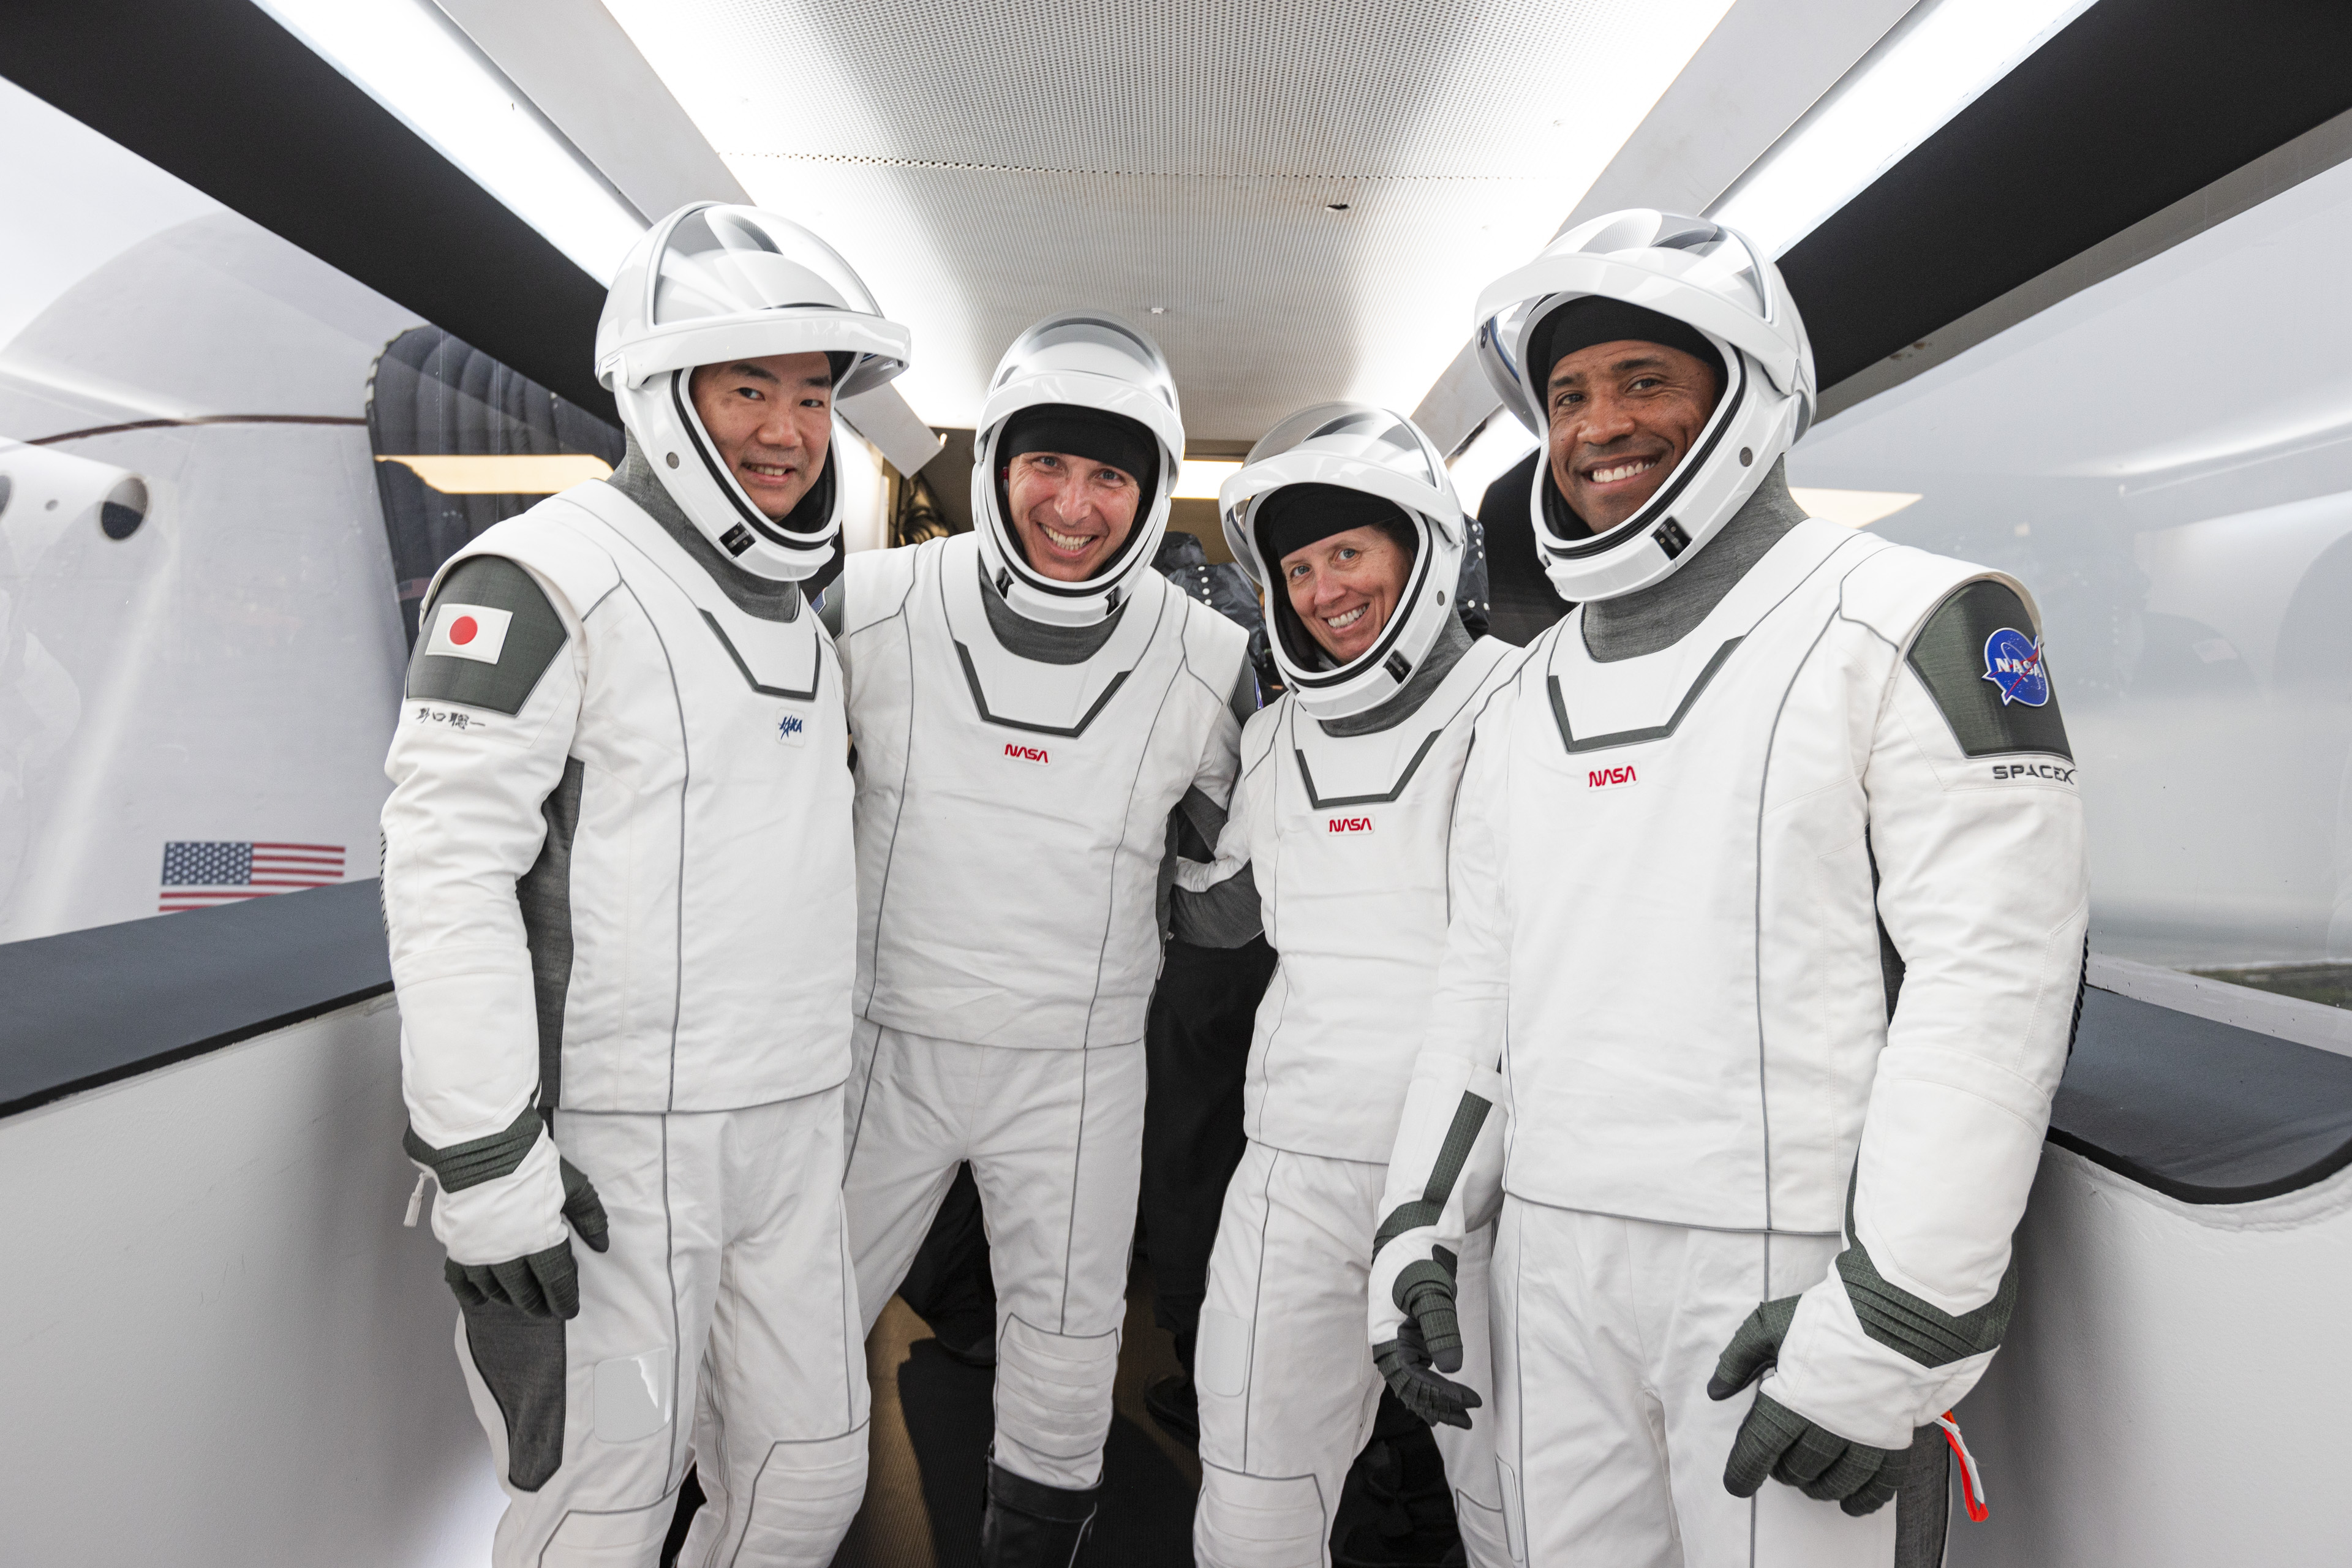 The four astronauts of NASA and SpaceX's Crew-1 mission to the International Space Station pose for a portrait during a launch rehearsal at Pad 39A of NASA's Kennedy Space Center in Cape Canaveral, Florida on Nov. 12, 2020. They are (from left): Japanese Aerospace Exploration Agency astronaut Soichi Noguchi and NASA astronauts Mike Hopkins, Shannon Walker and Victor Glover.